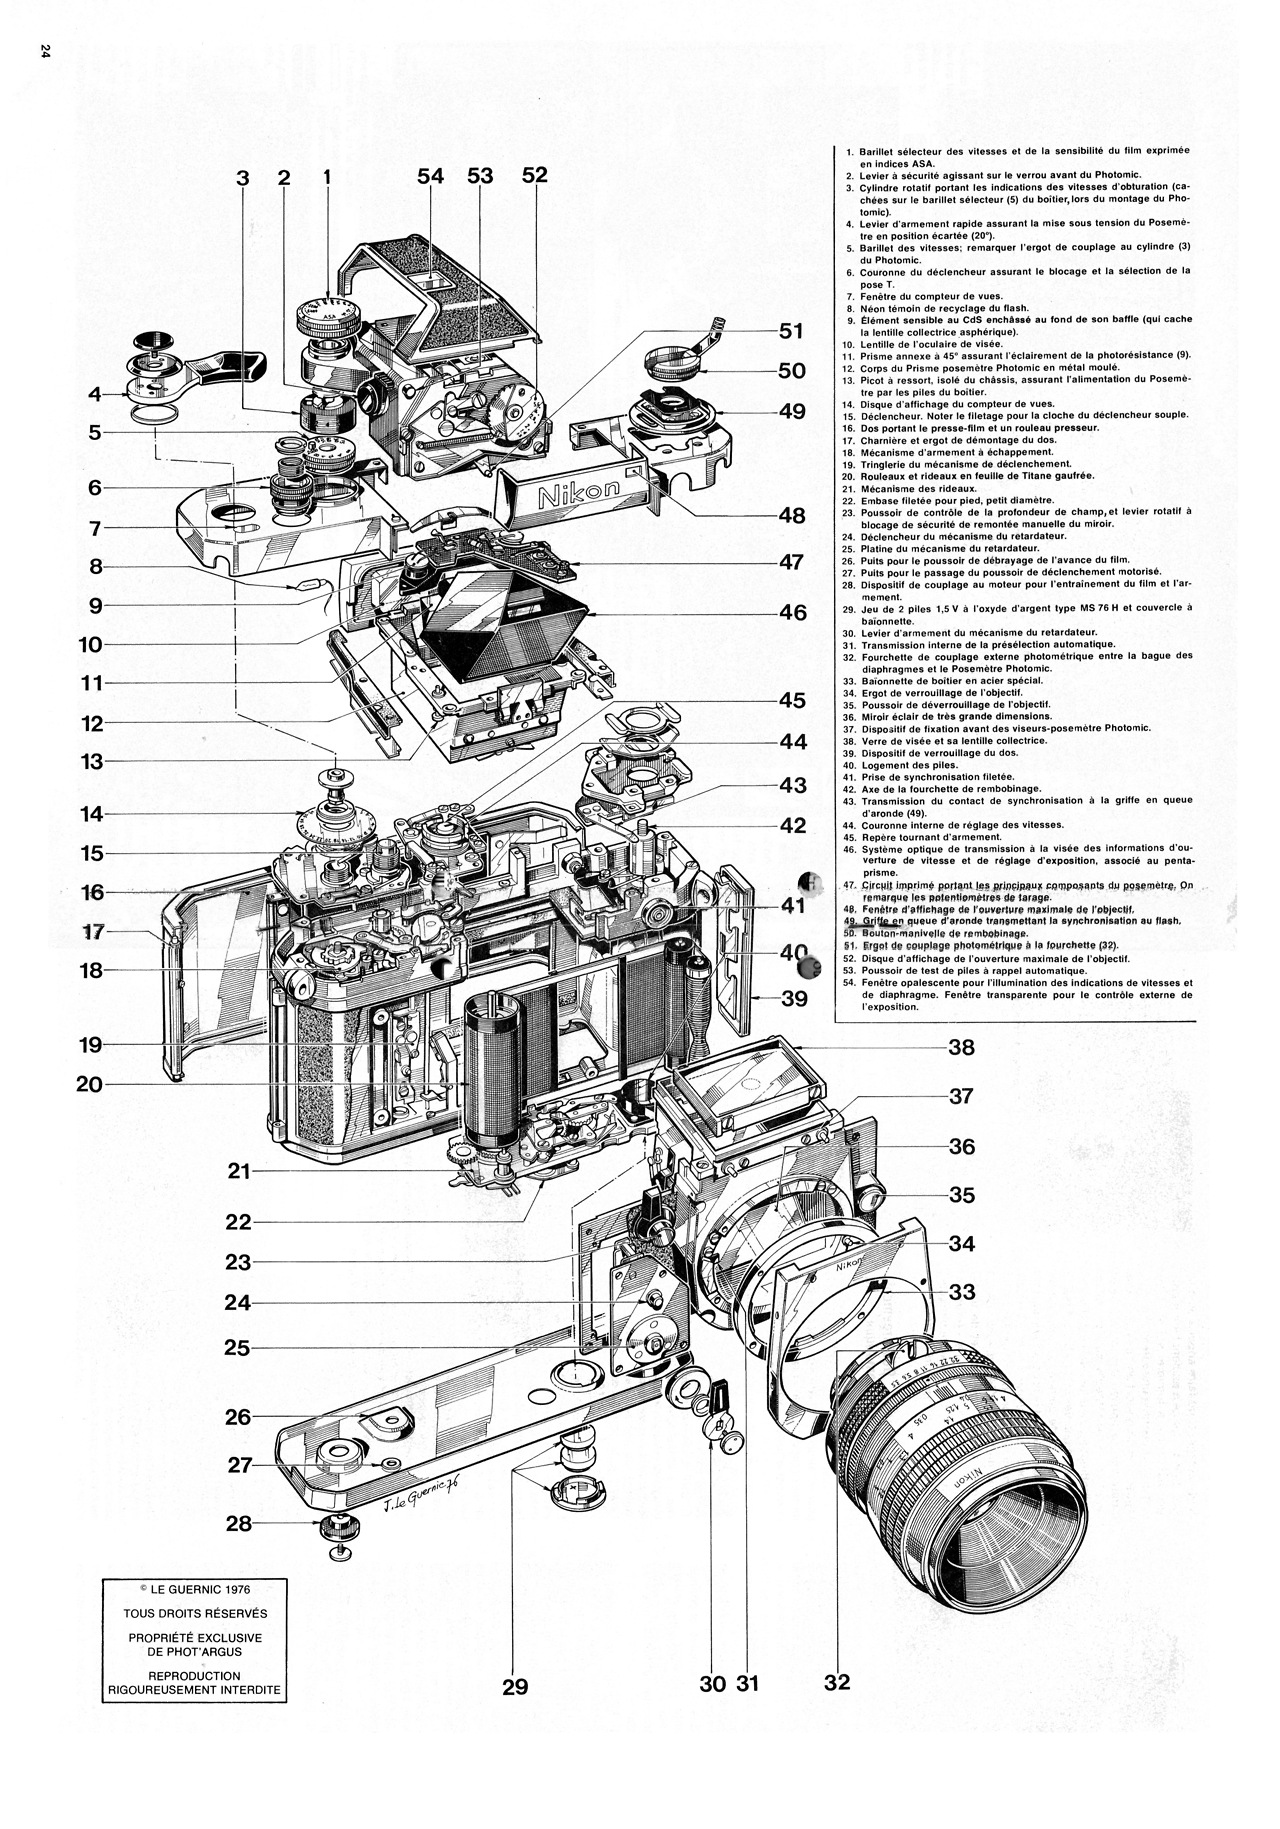 nikon-f2-slr-camera Nikon SLR camera schematics show up on the web Exposure